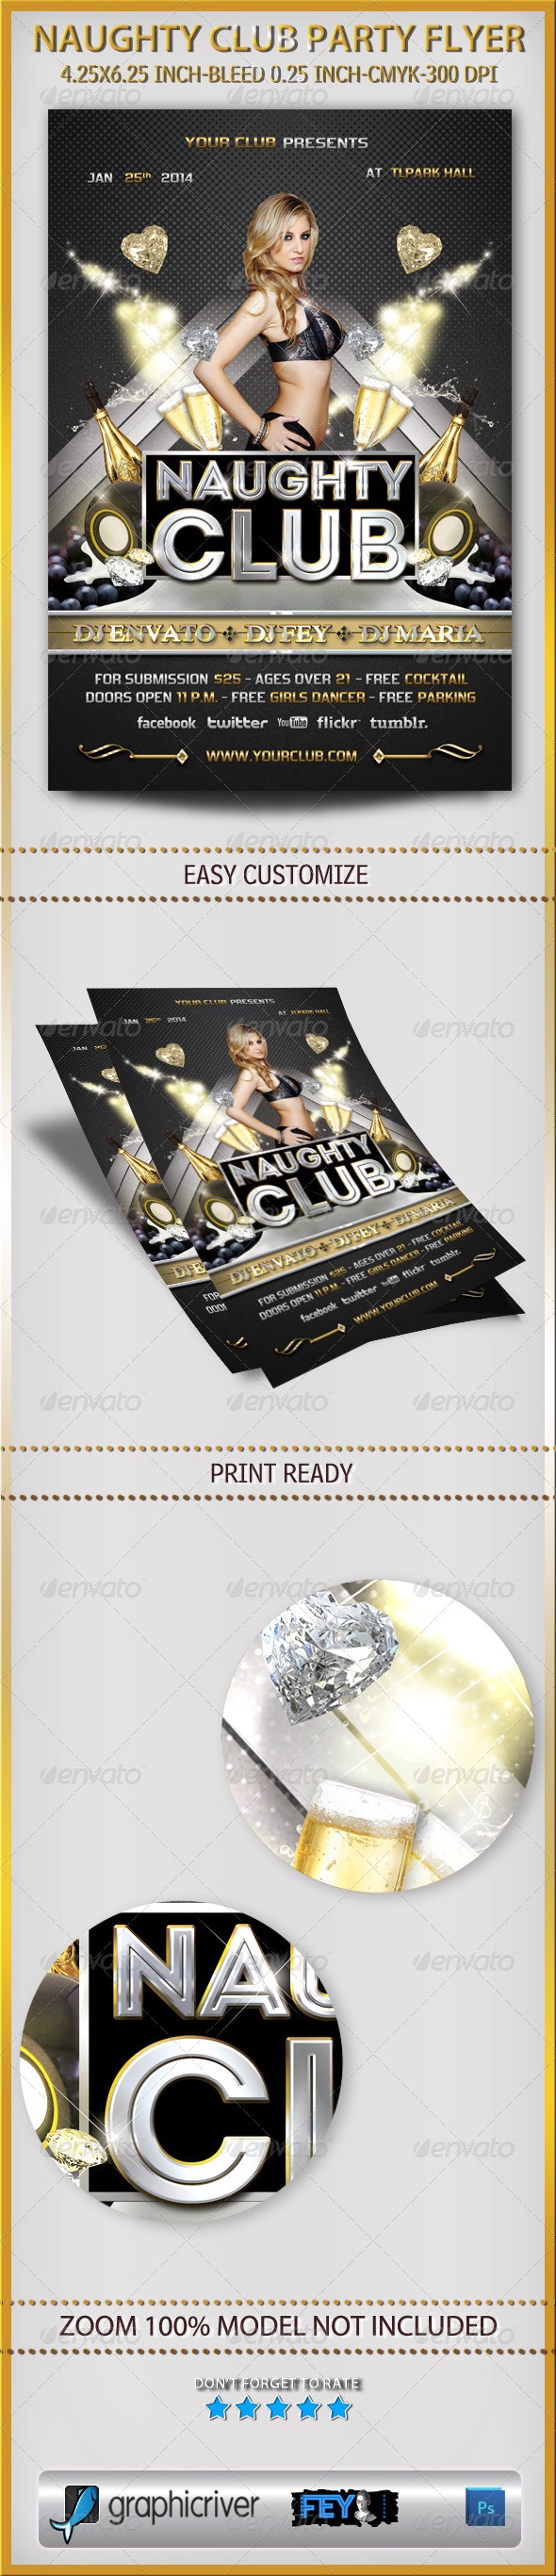 Naughty Club Party Flyer - Clubs & Parties Events